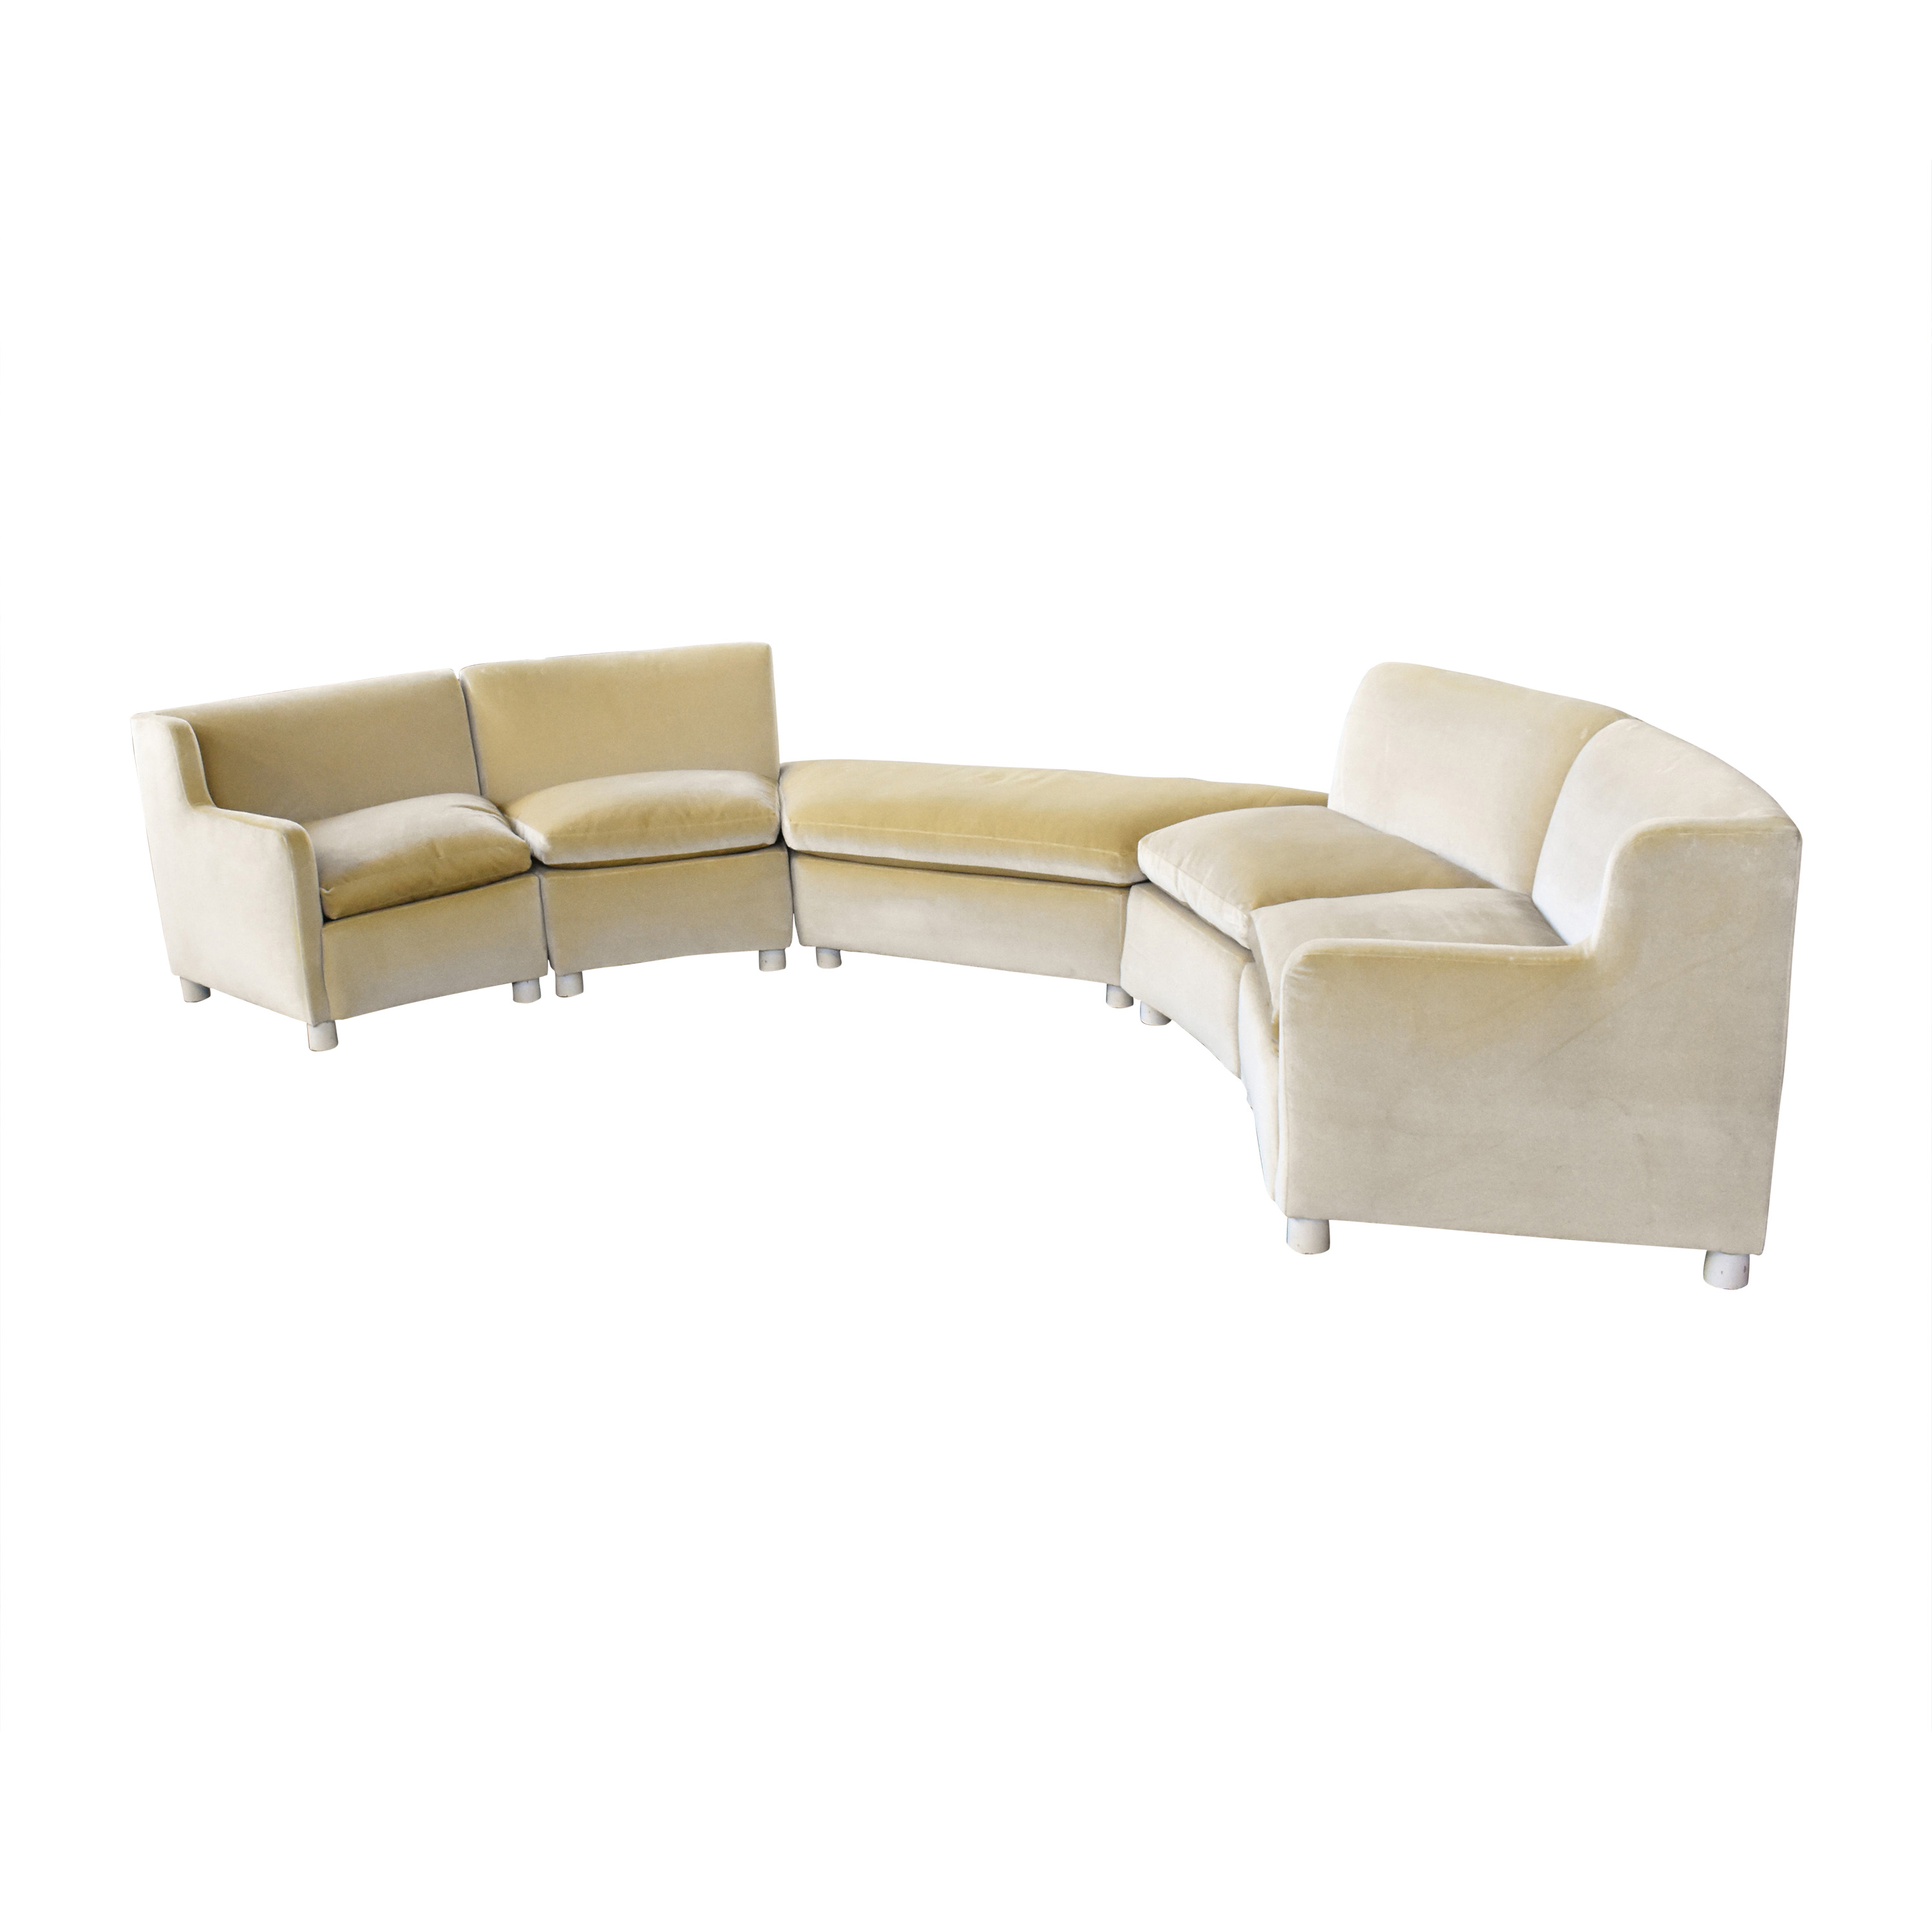 Curved Art Deco Sectional with Ottomans nyc